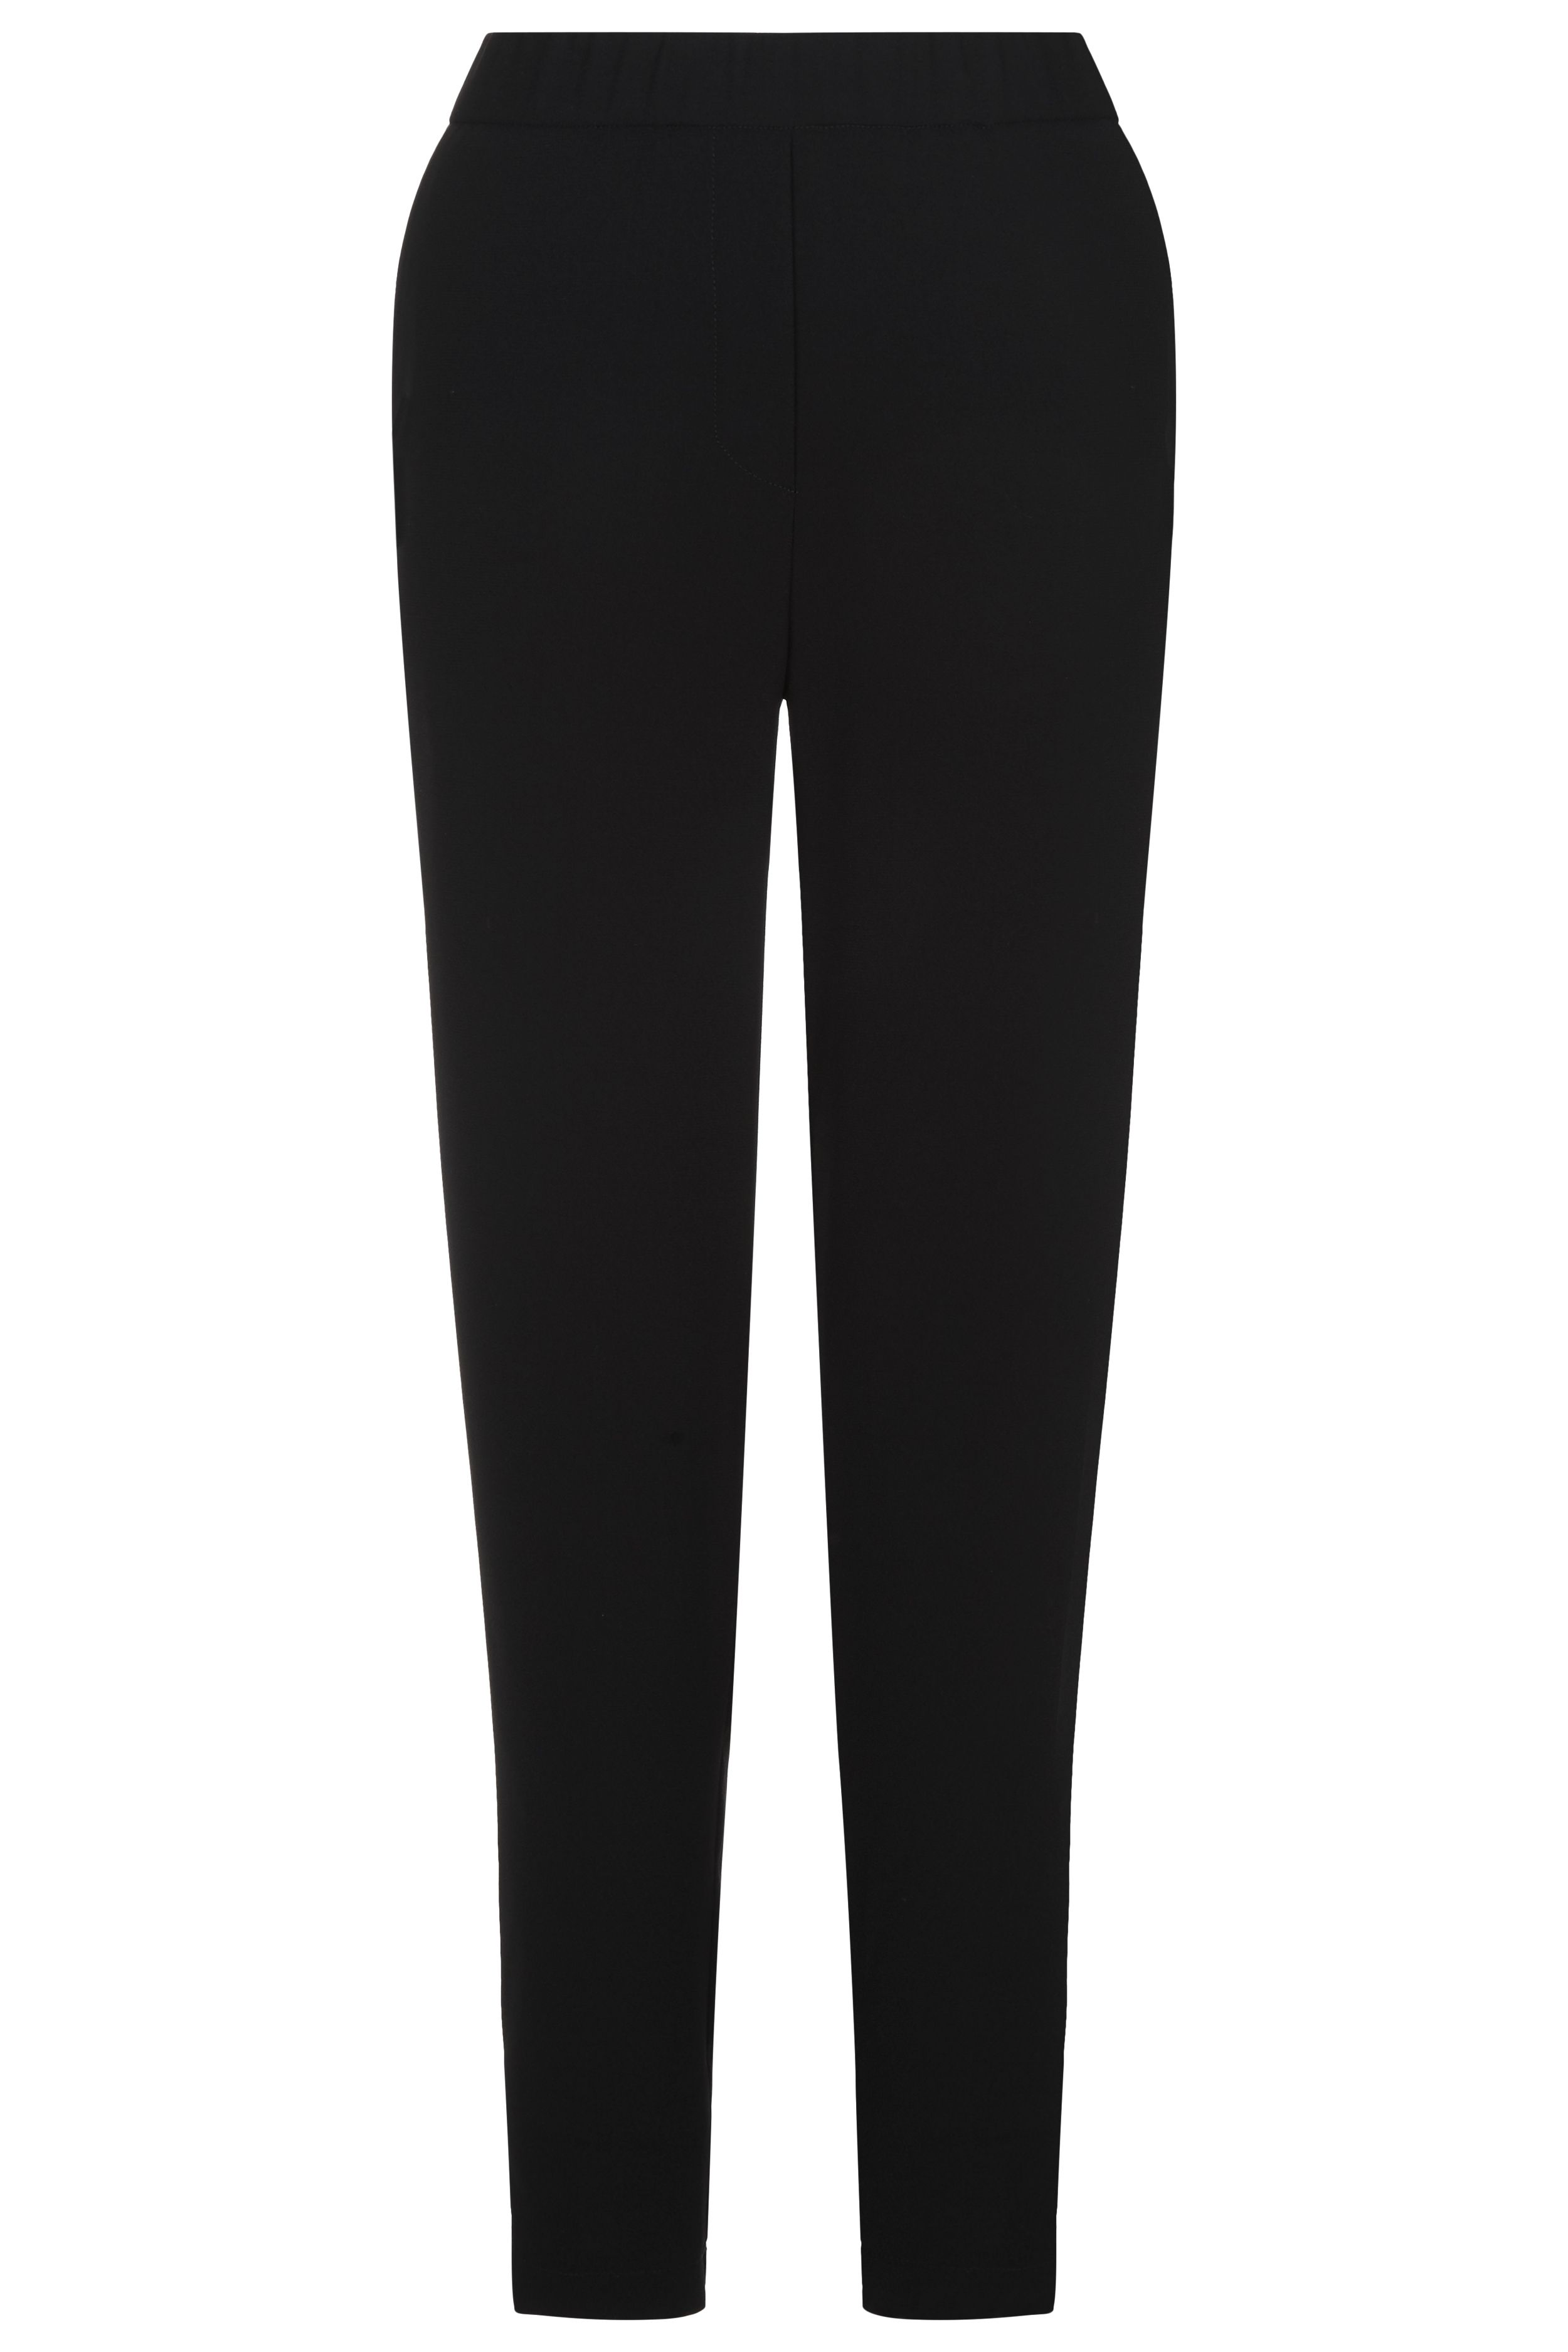 Fenn Wright Manson Eliza Trouser, Black